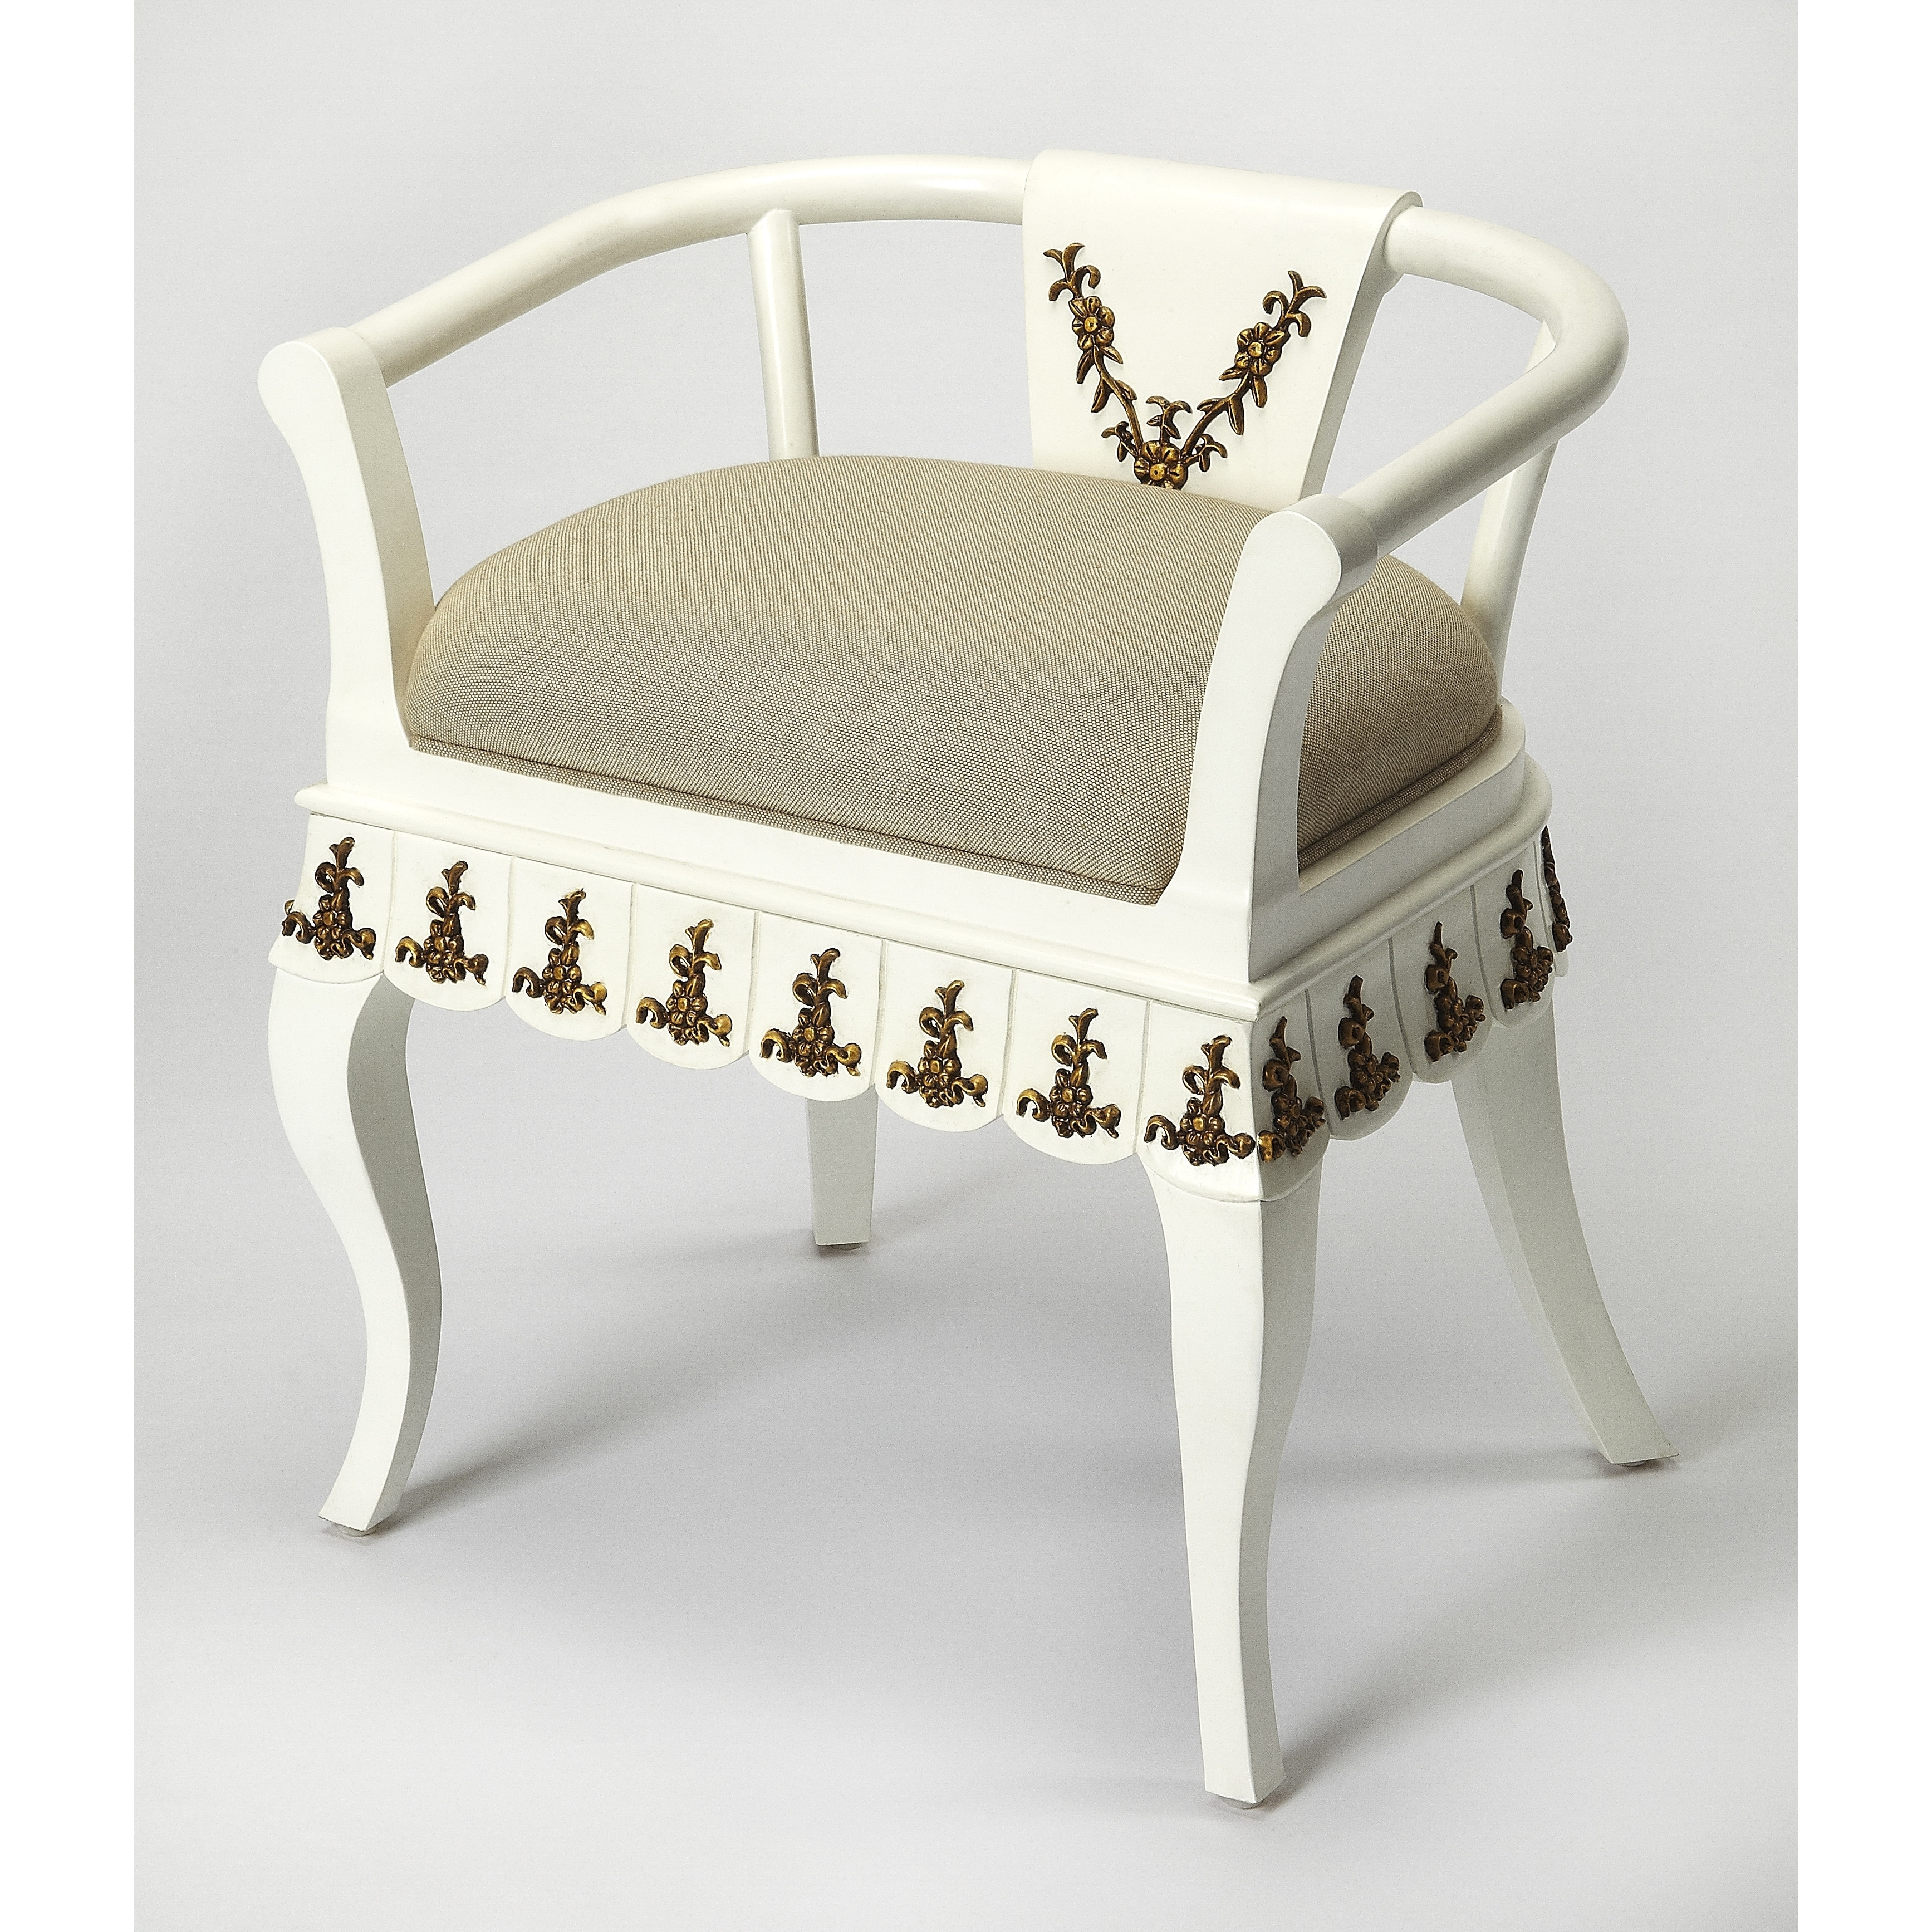 Handmade Linor White And Gold Vanity Chair Indonesia On Sale Overstock 28126397